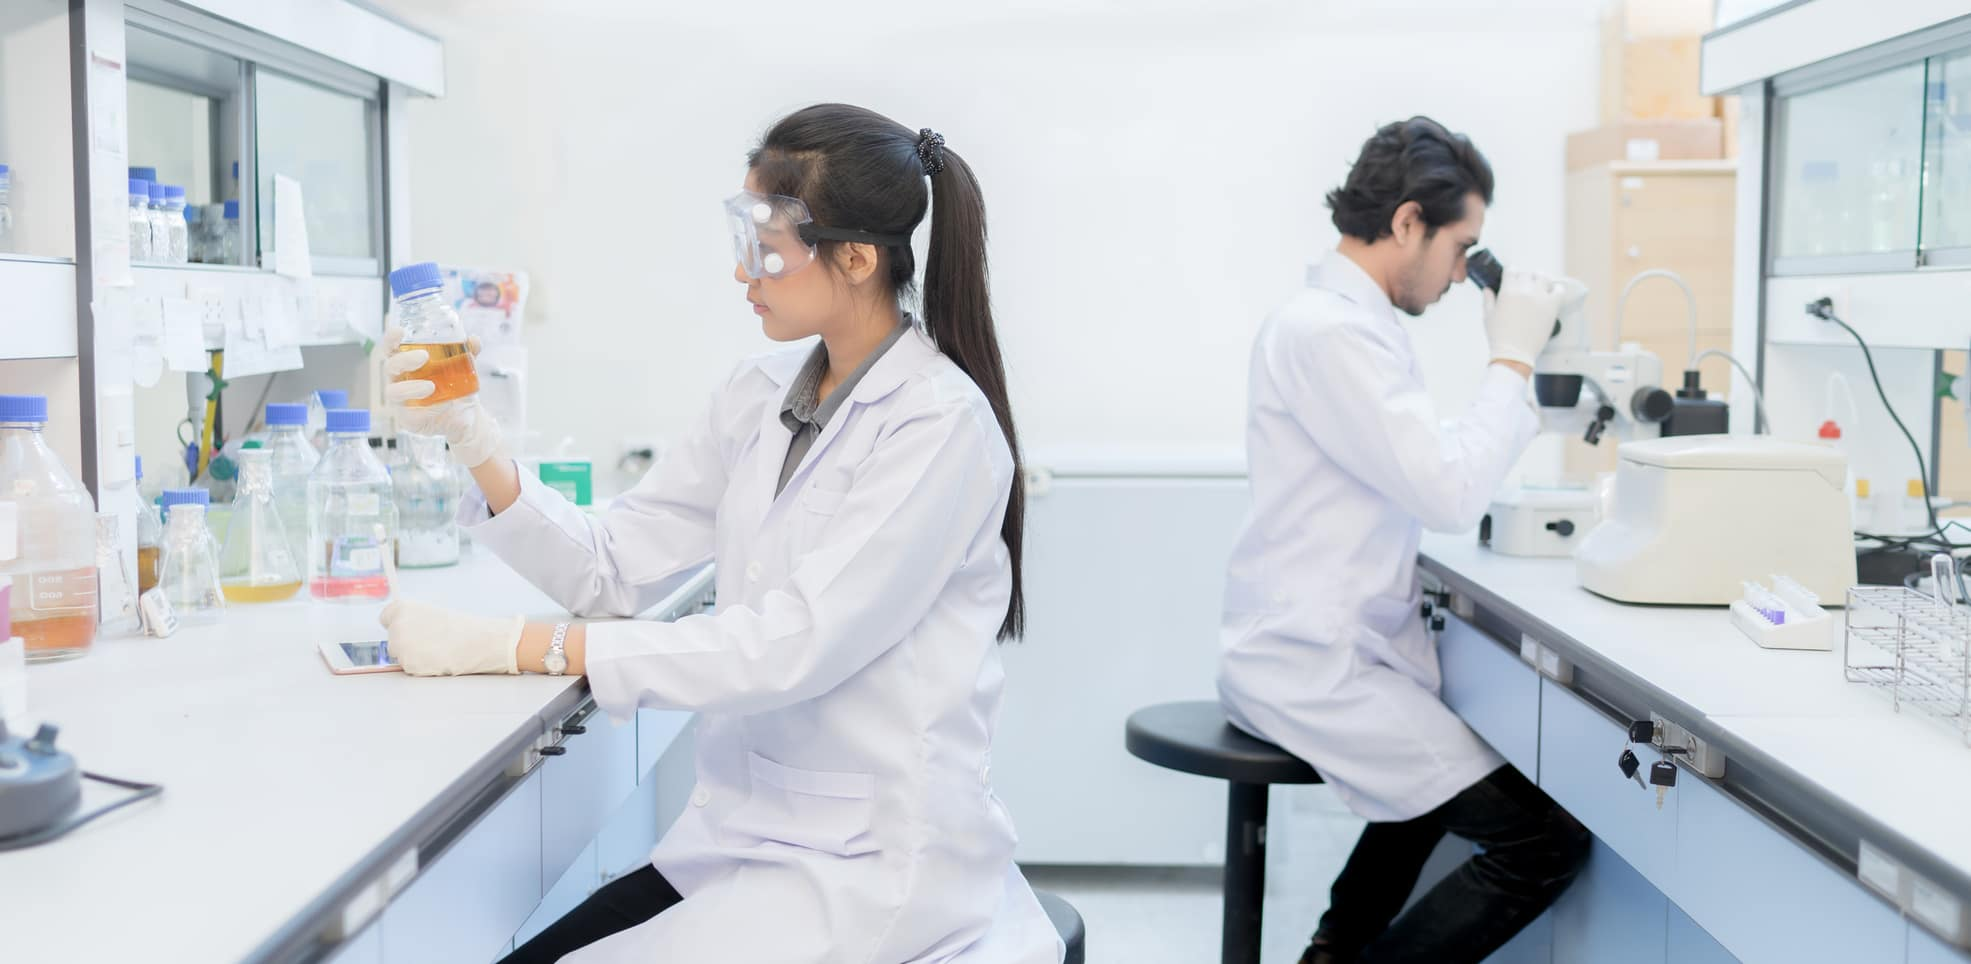 Handling Stress in a Laboratory Environment